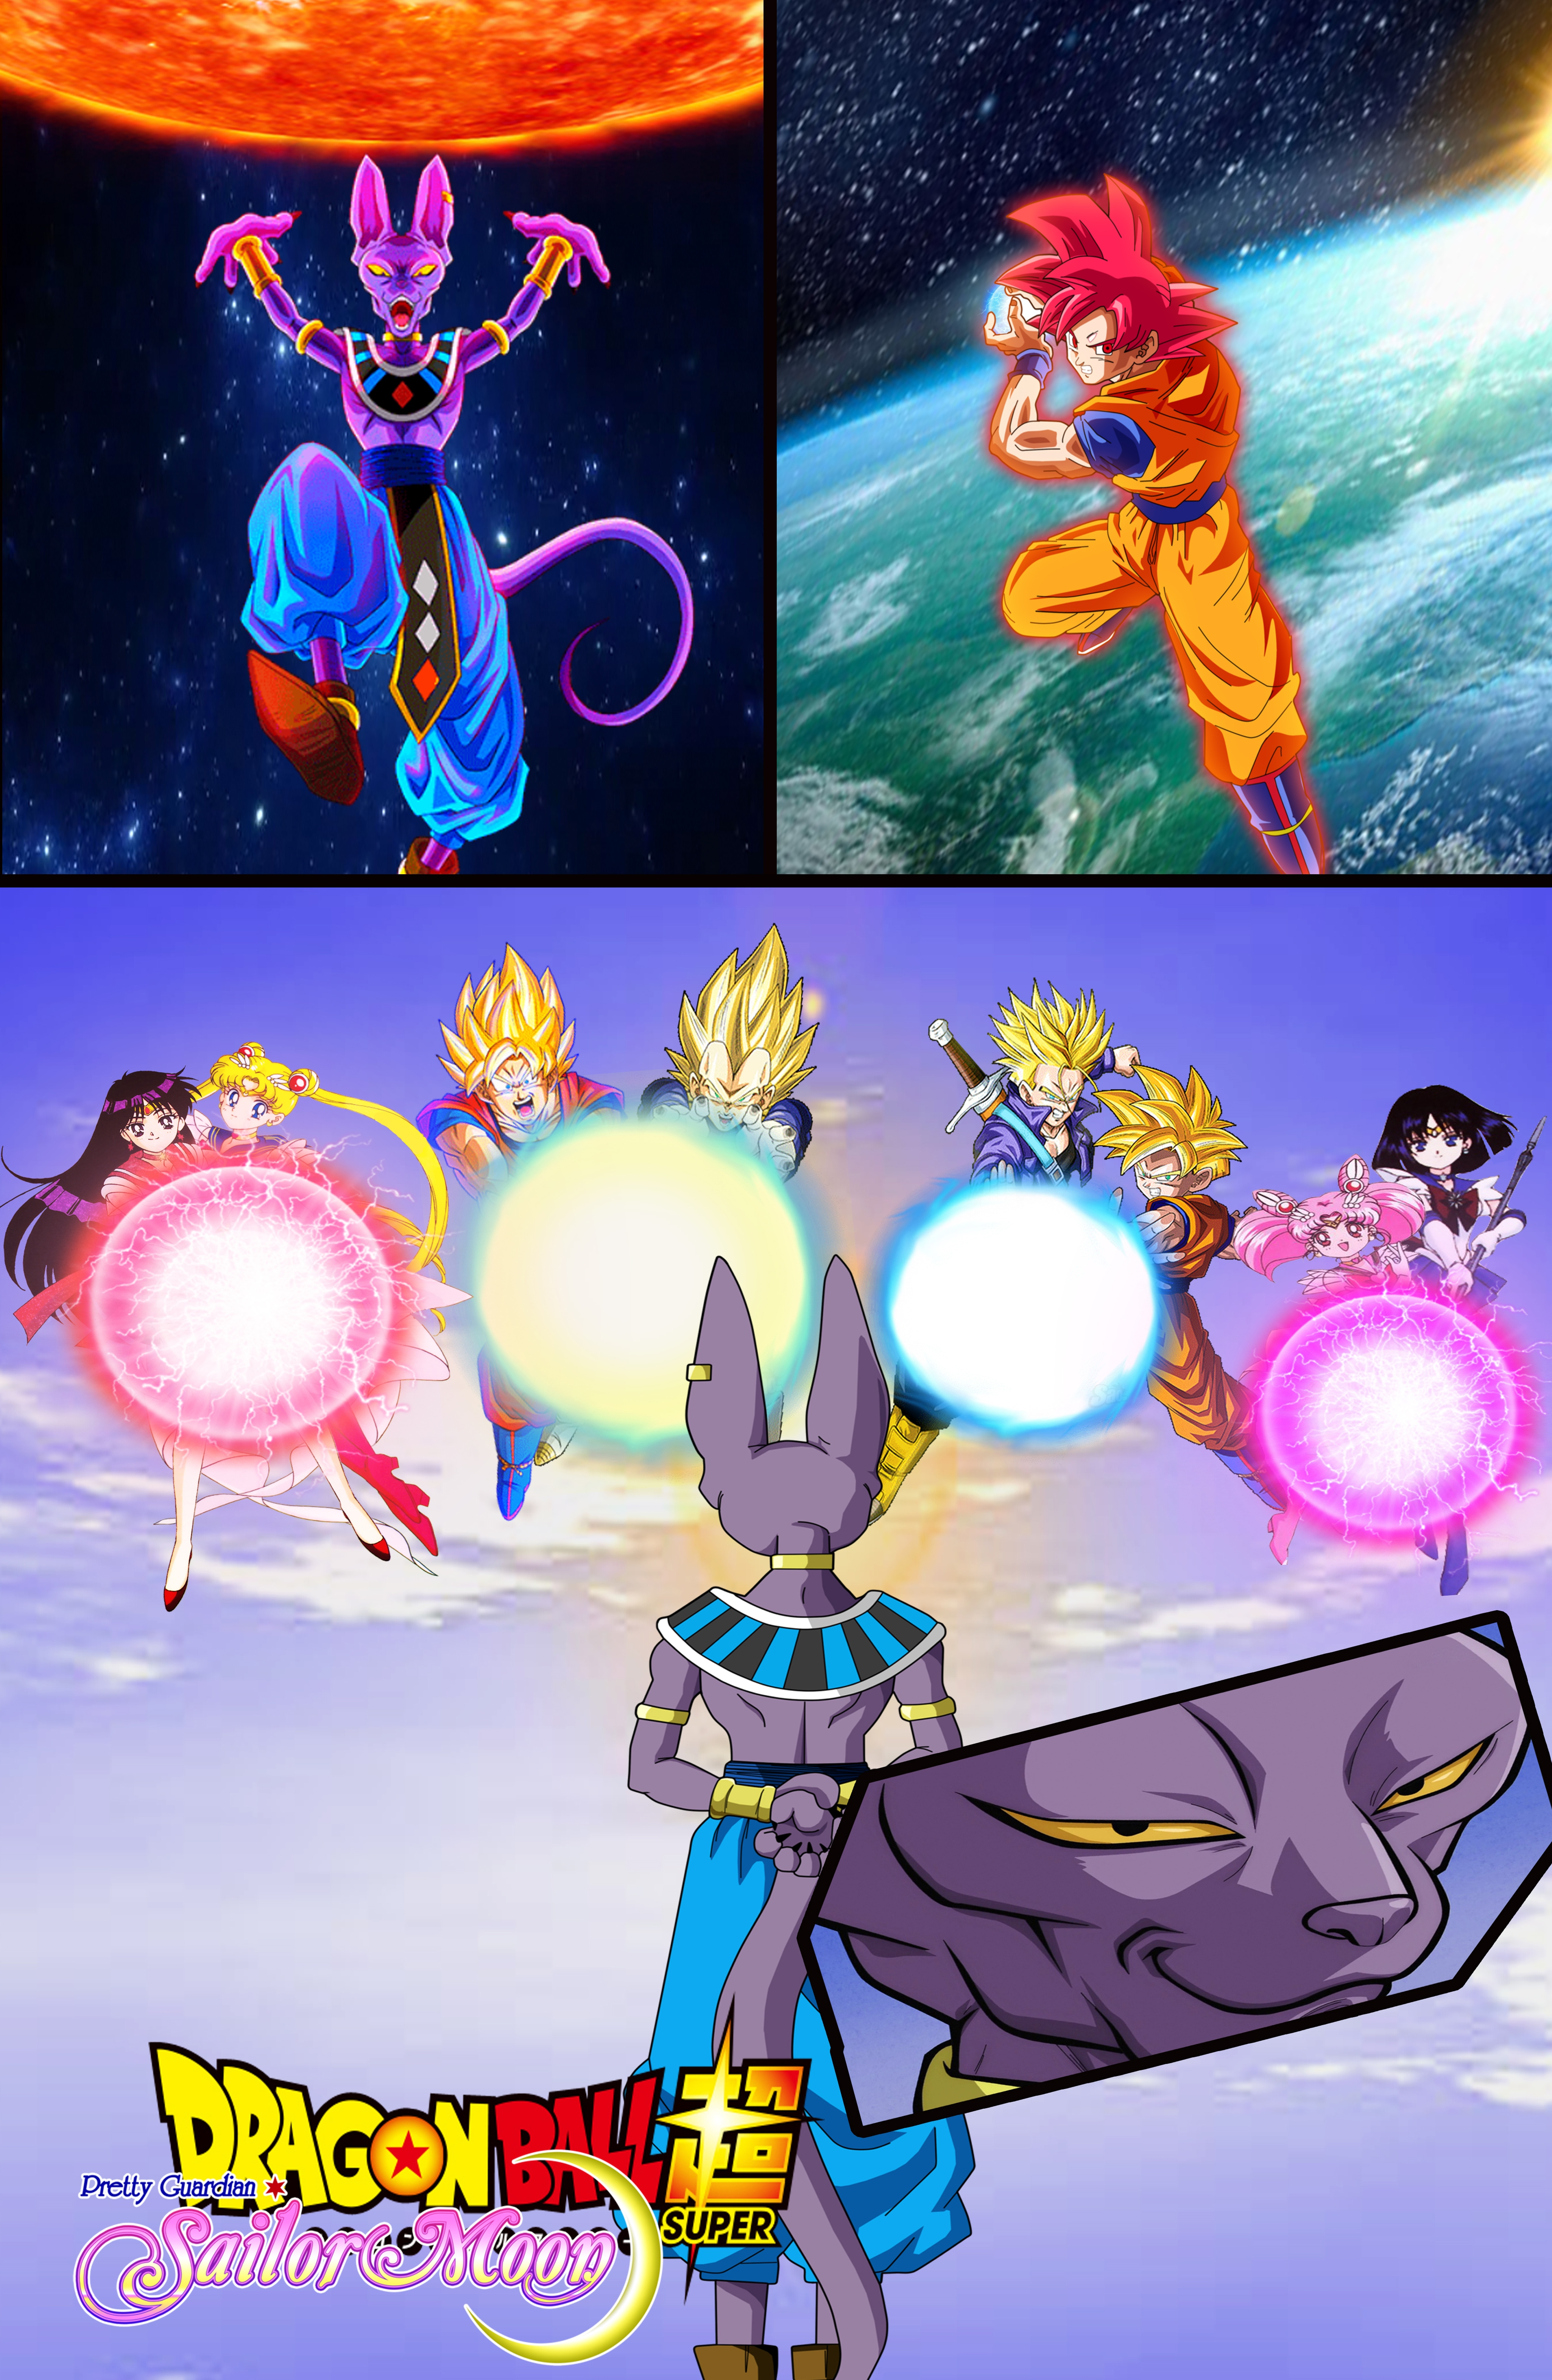 Dragon ball z and sailor moon